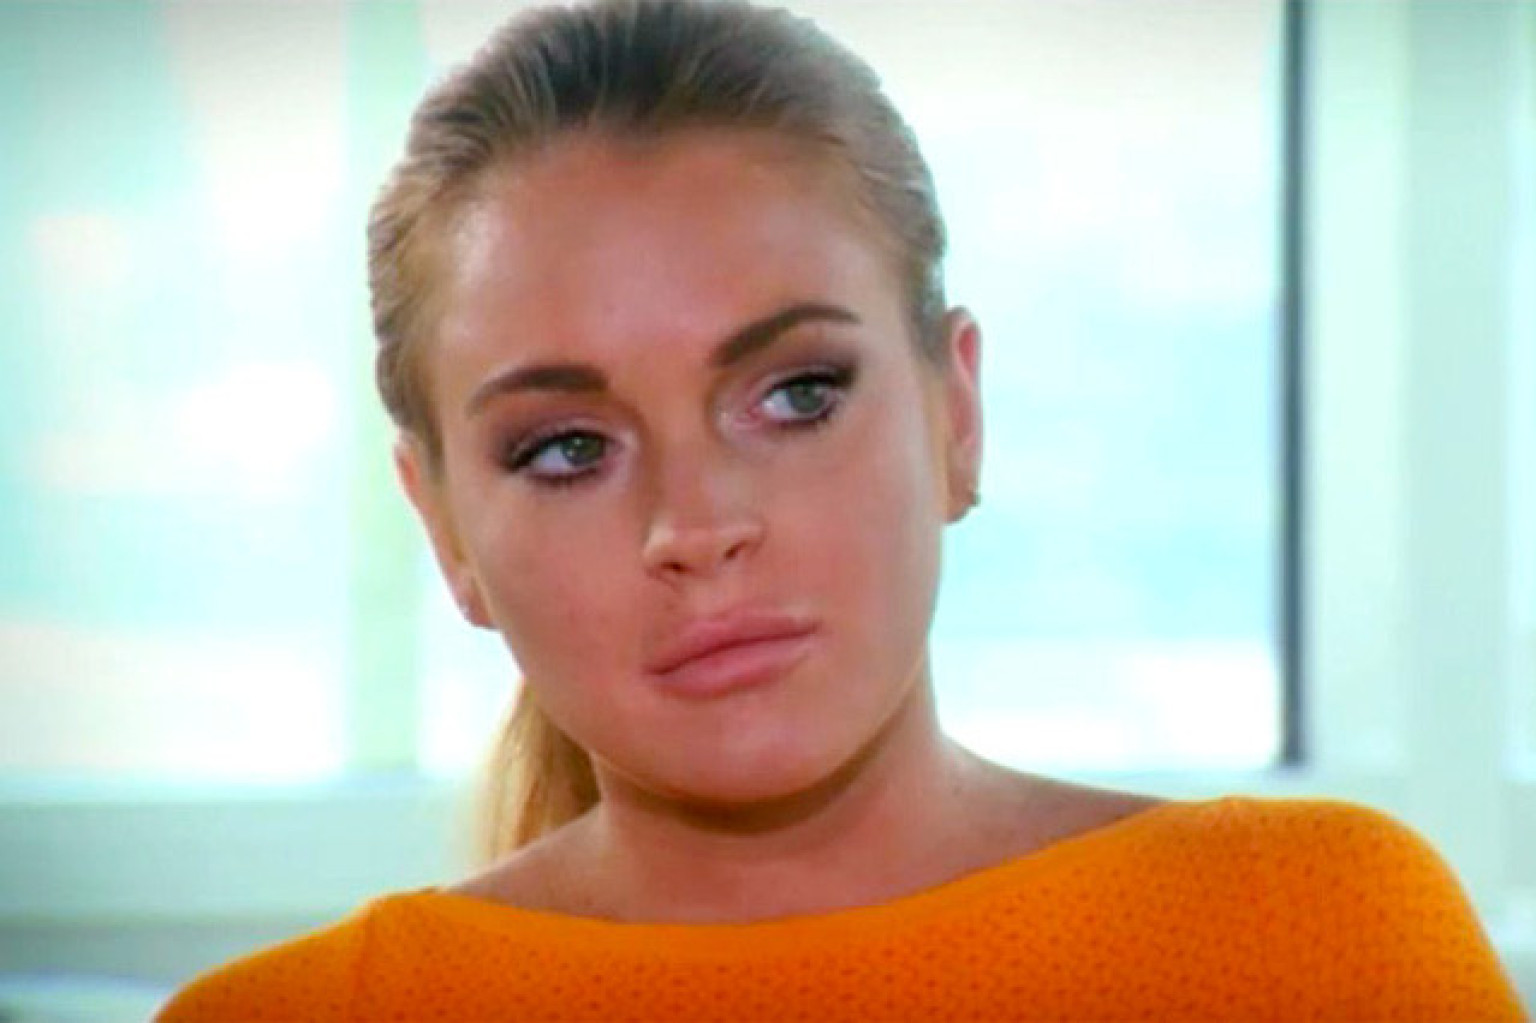 What is Lindsay Lohan addicted to? What's her drug of choice?